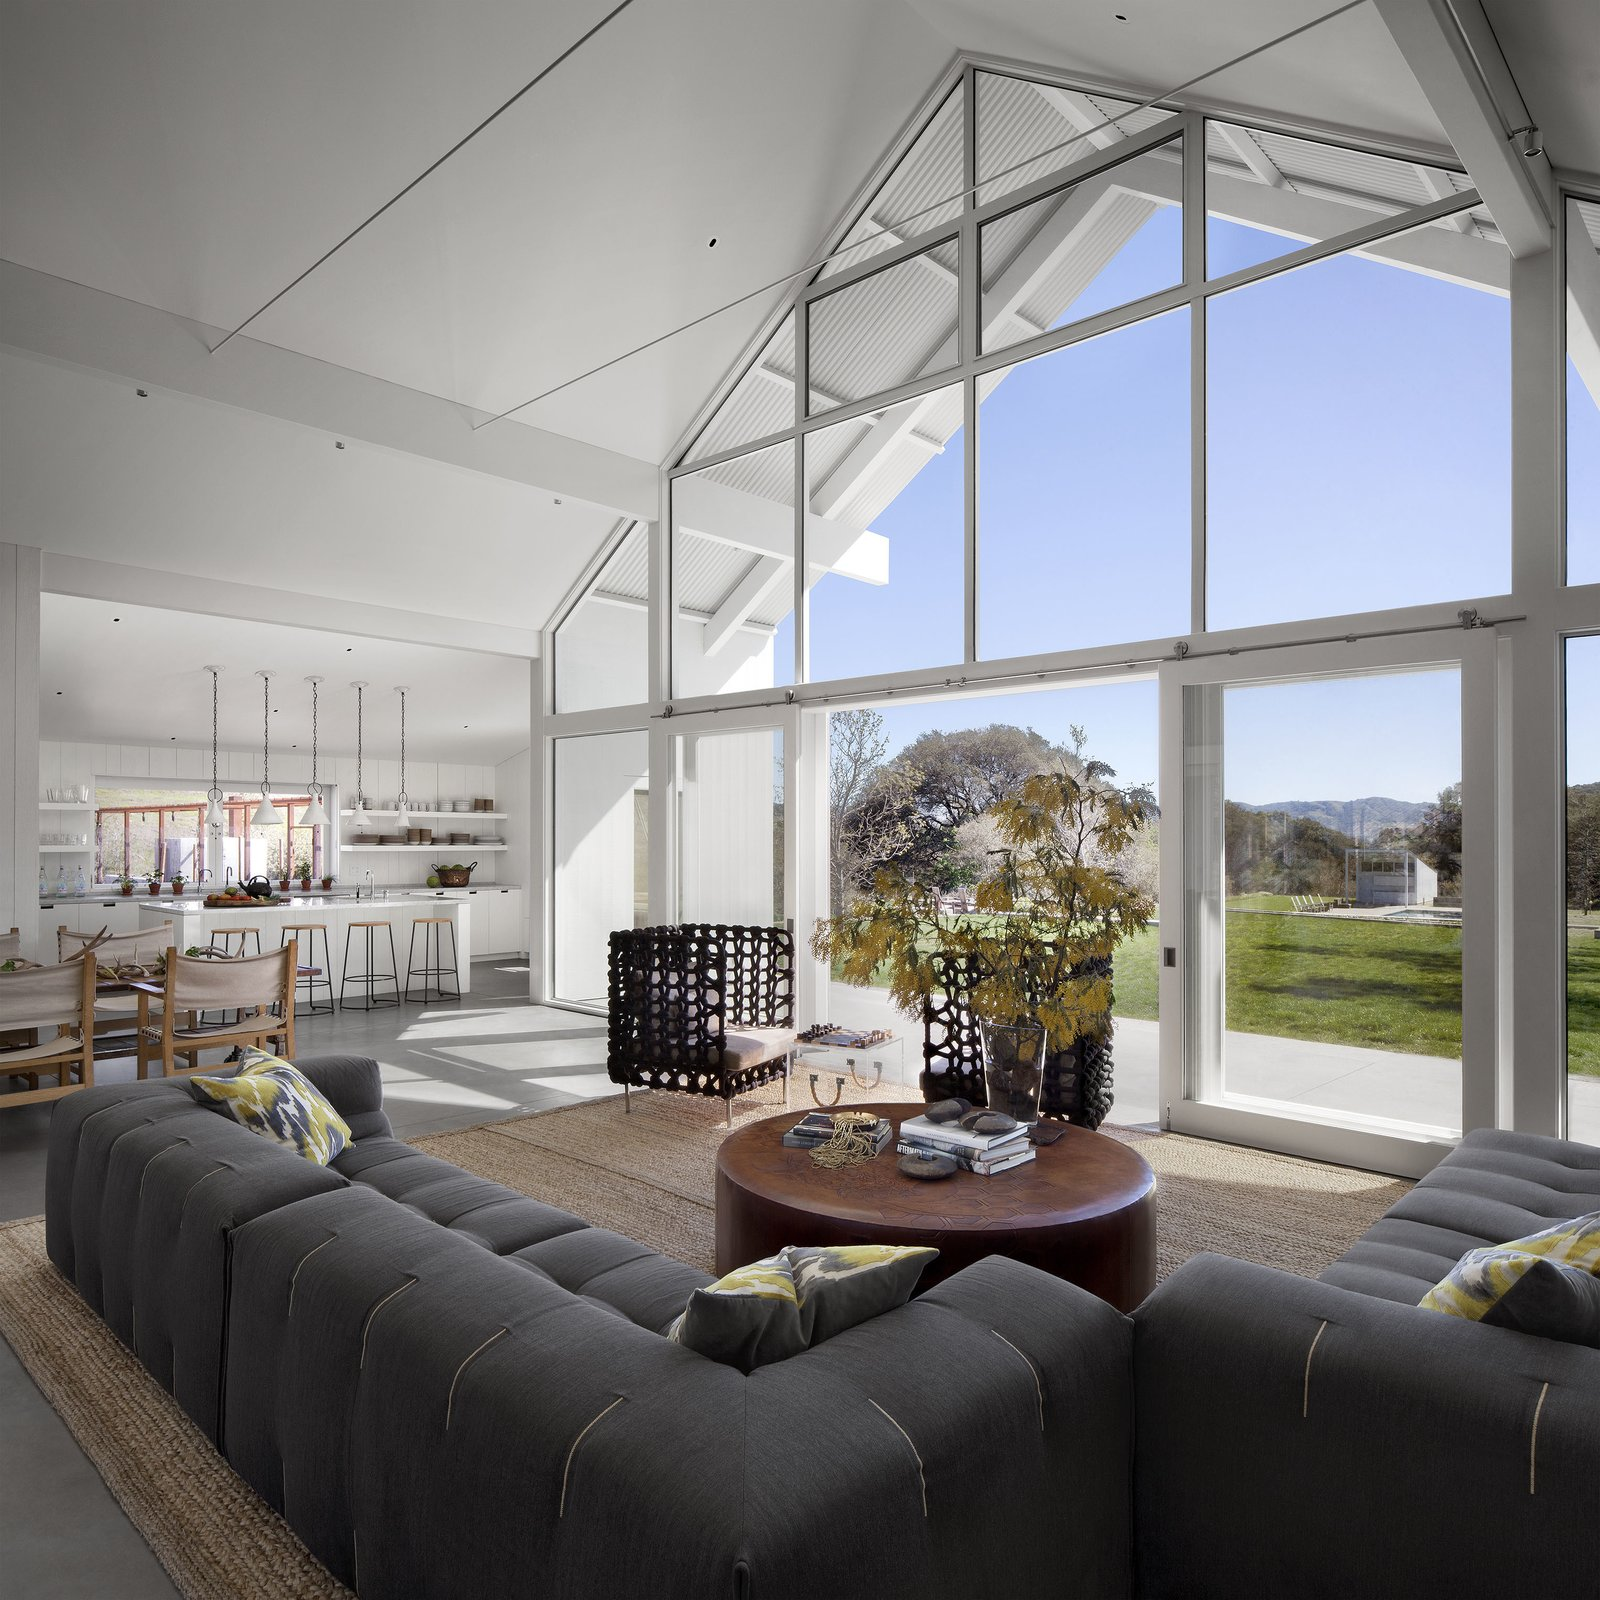 #TurnbullGriffinHaesloop #interior #livingroom #kitchen #window  Hupomone Ranch by Turnbull Griffin Haesloop Architects